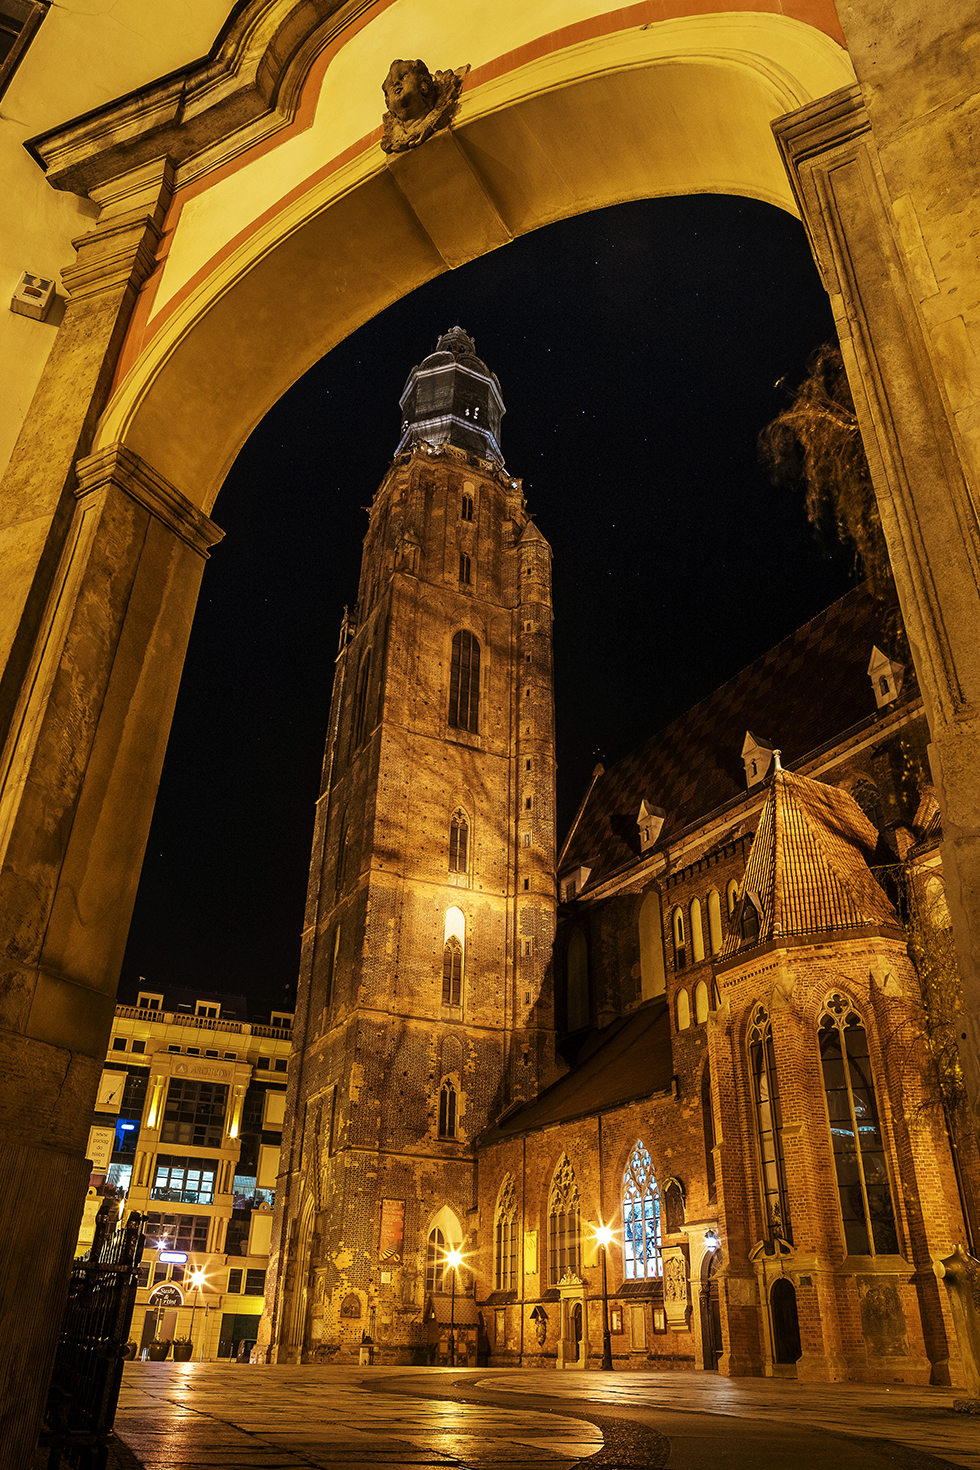 This is one of the famous church in rynek , wroclaw poland , the challenging things in photographing tall architecture at night is composing and avoiding light noise